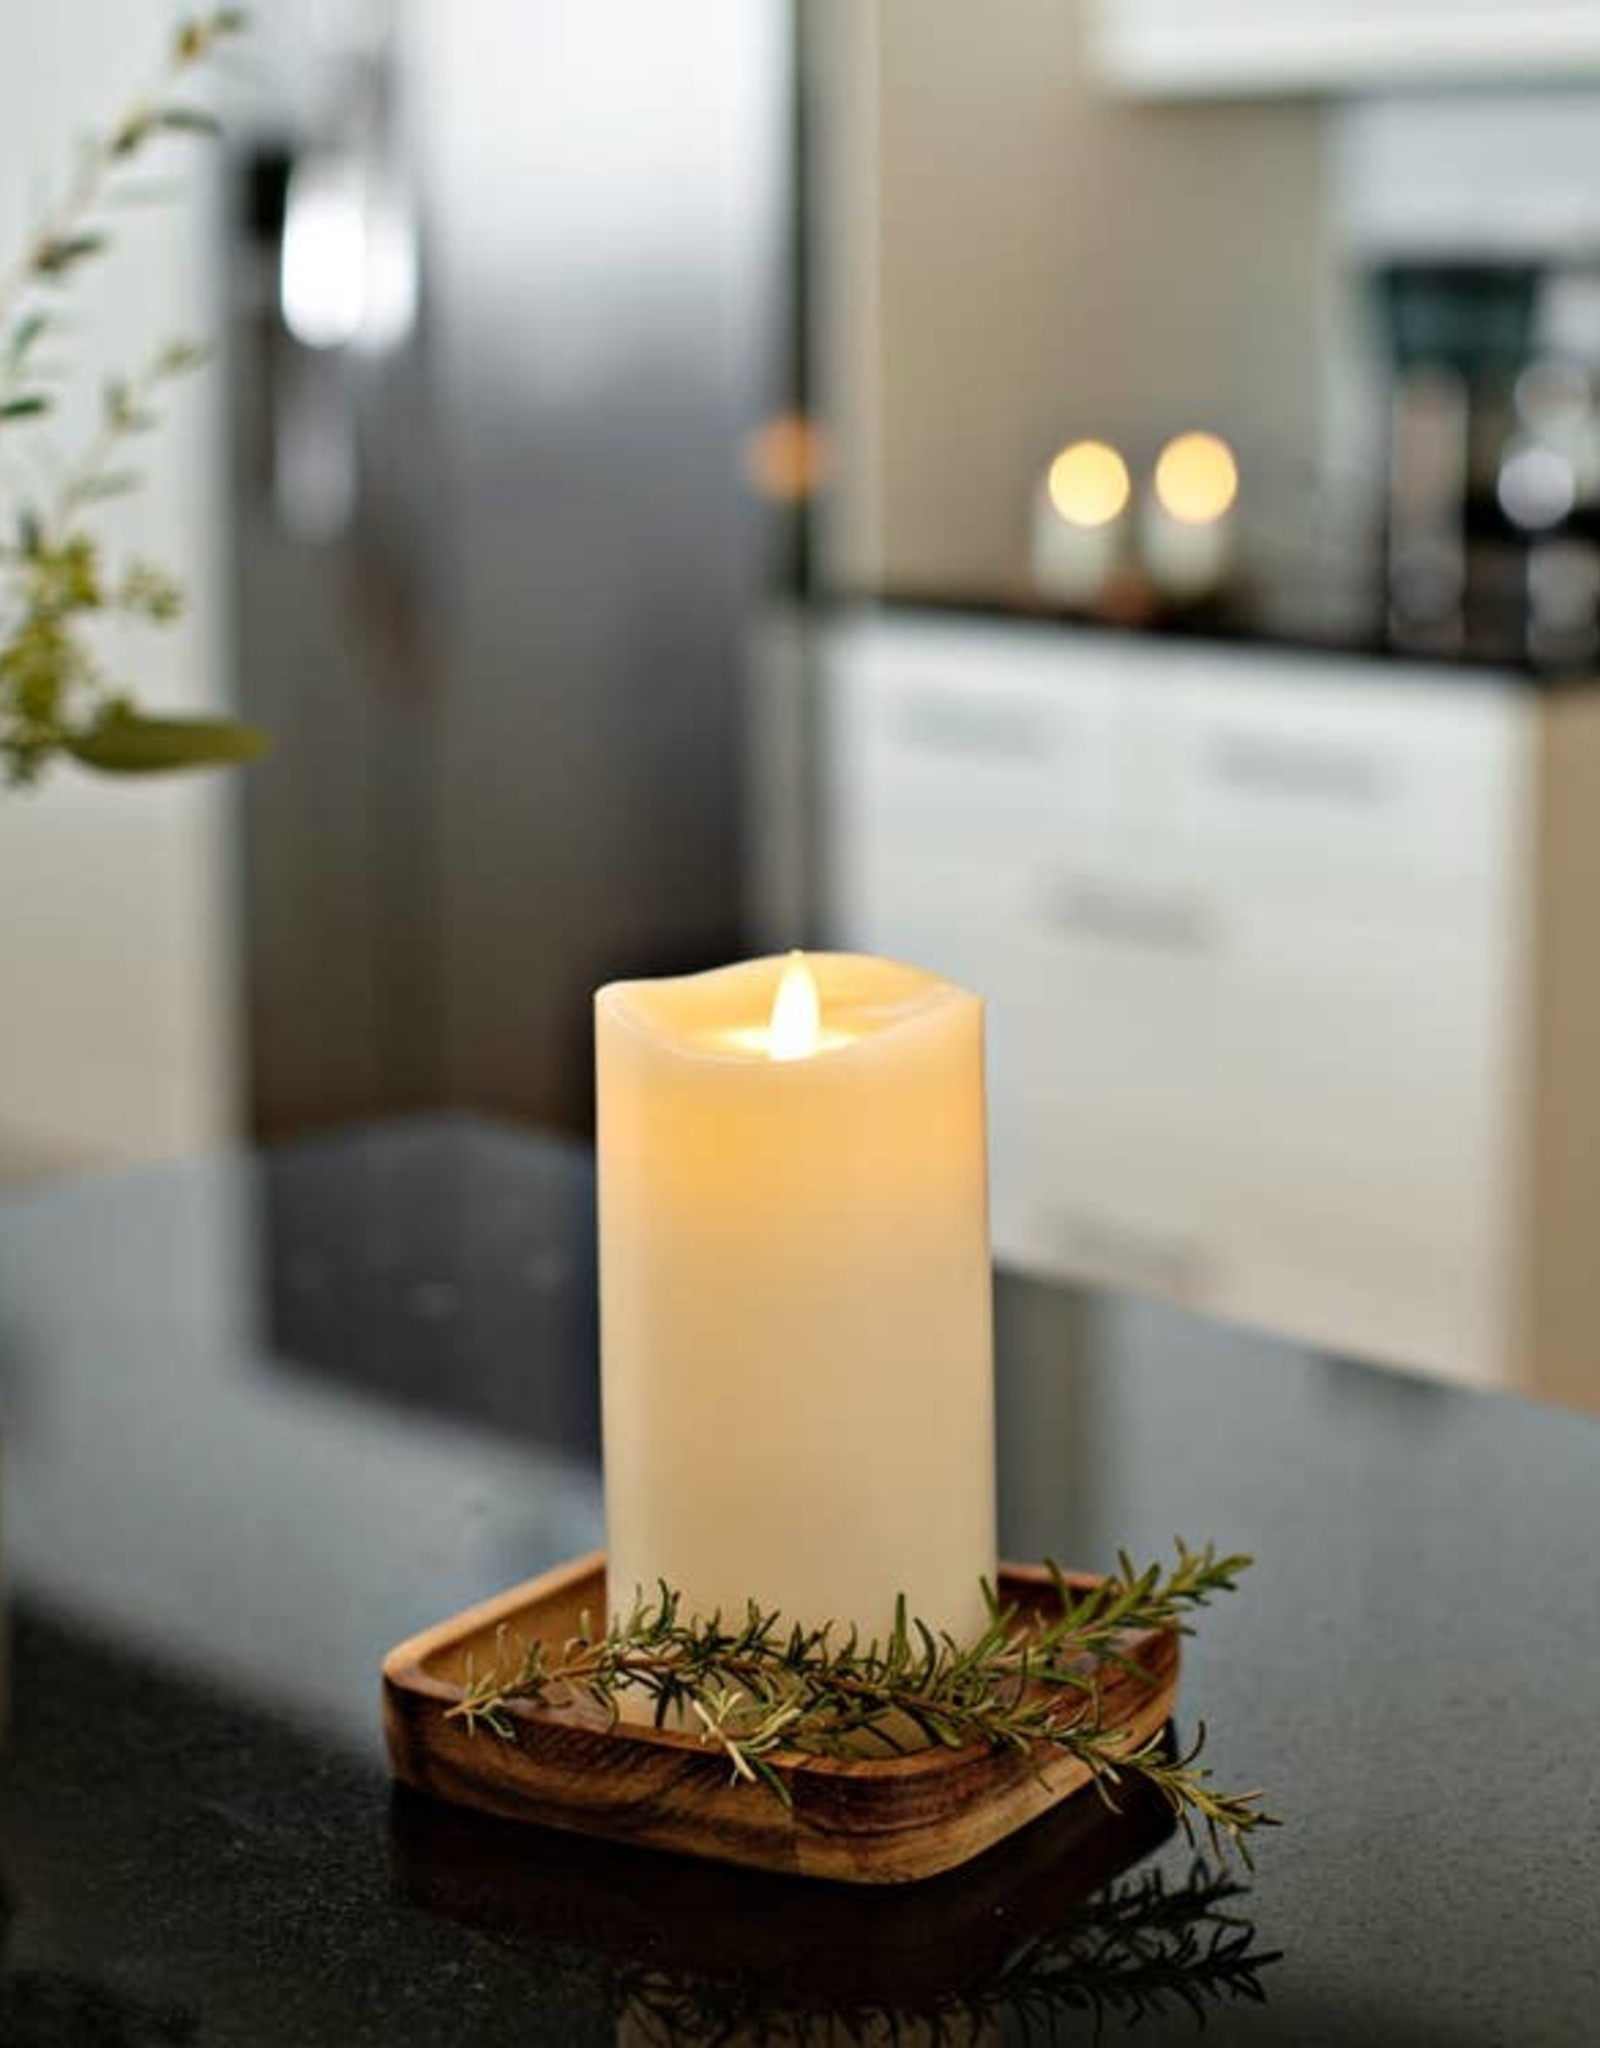 Matchless Candle Co. MATCHLESS Candle Co.   3x6.5 Pillar